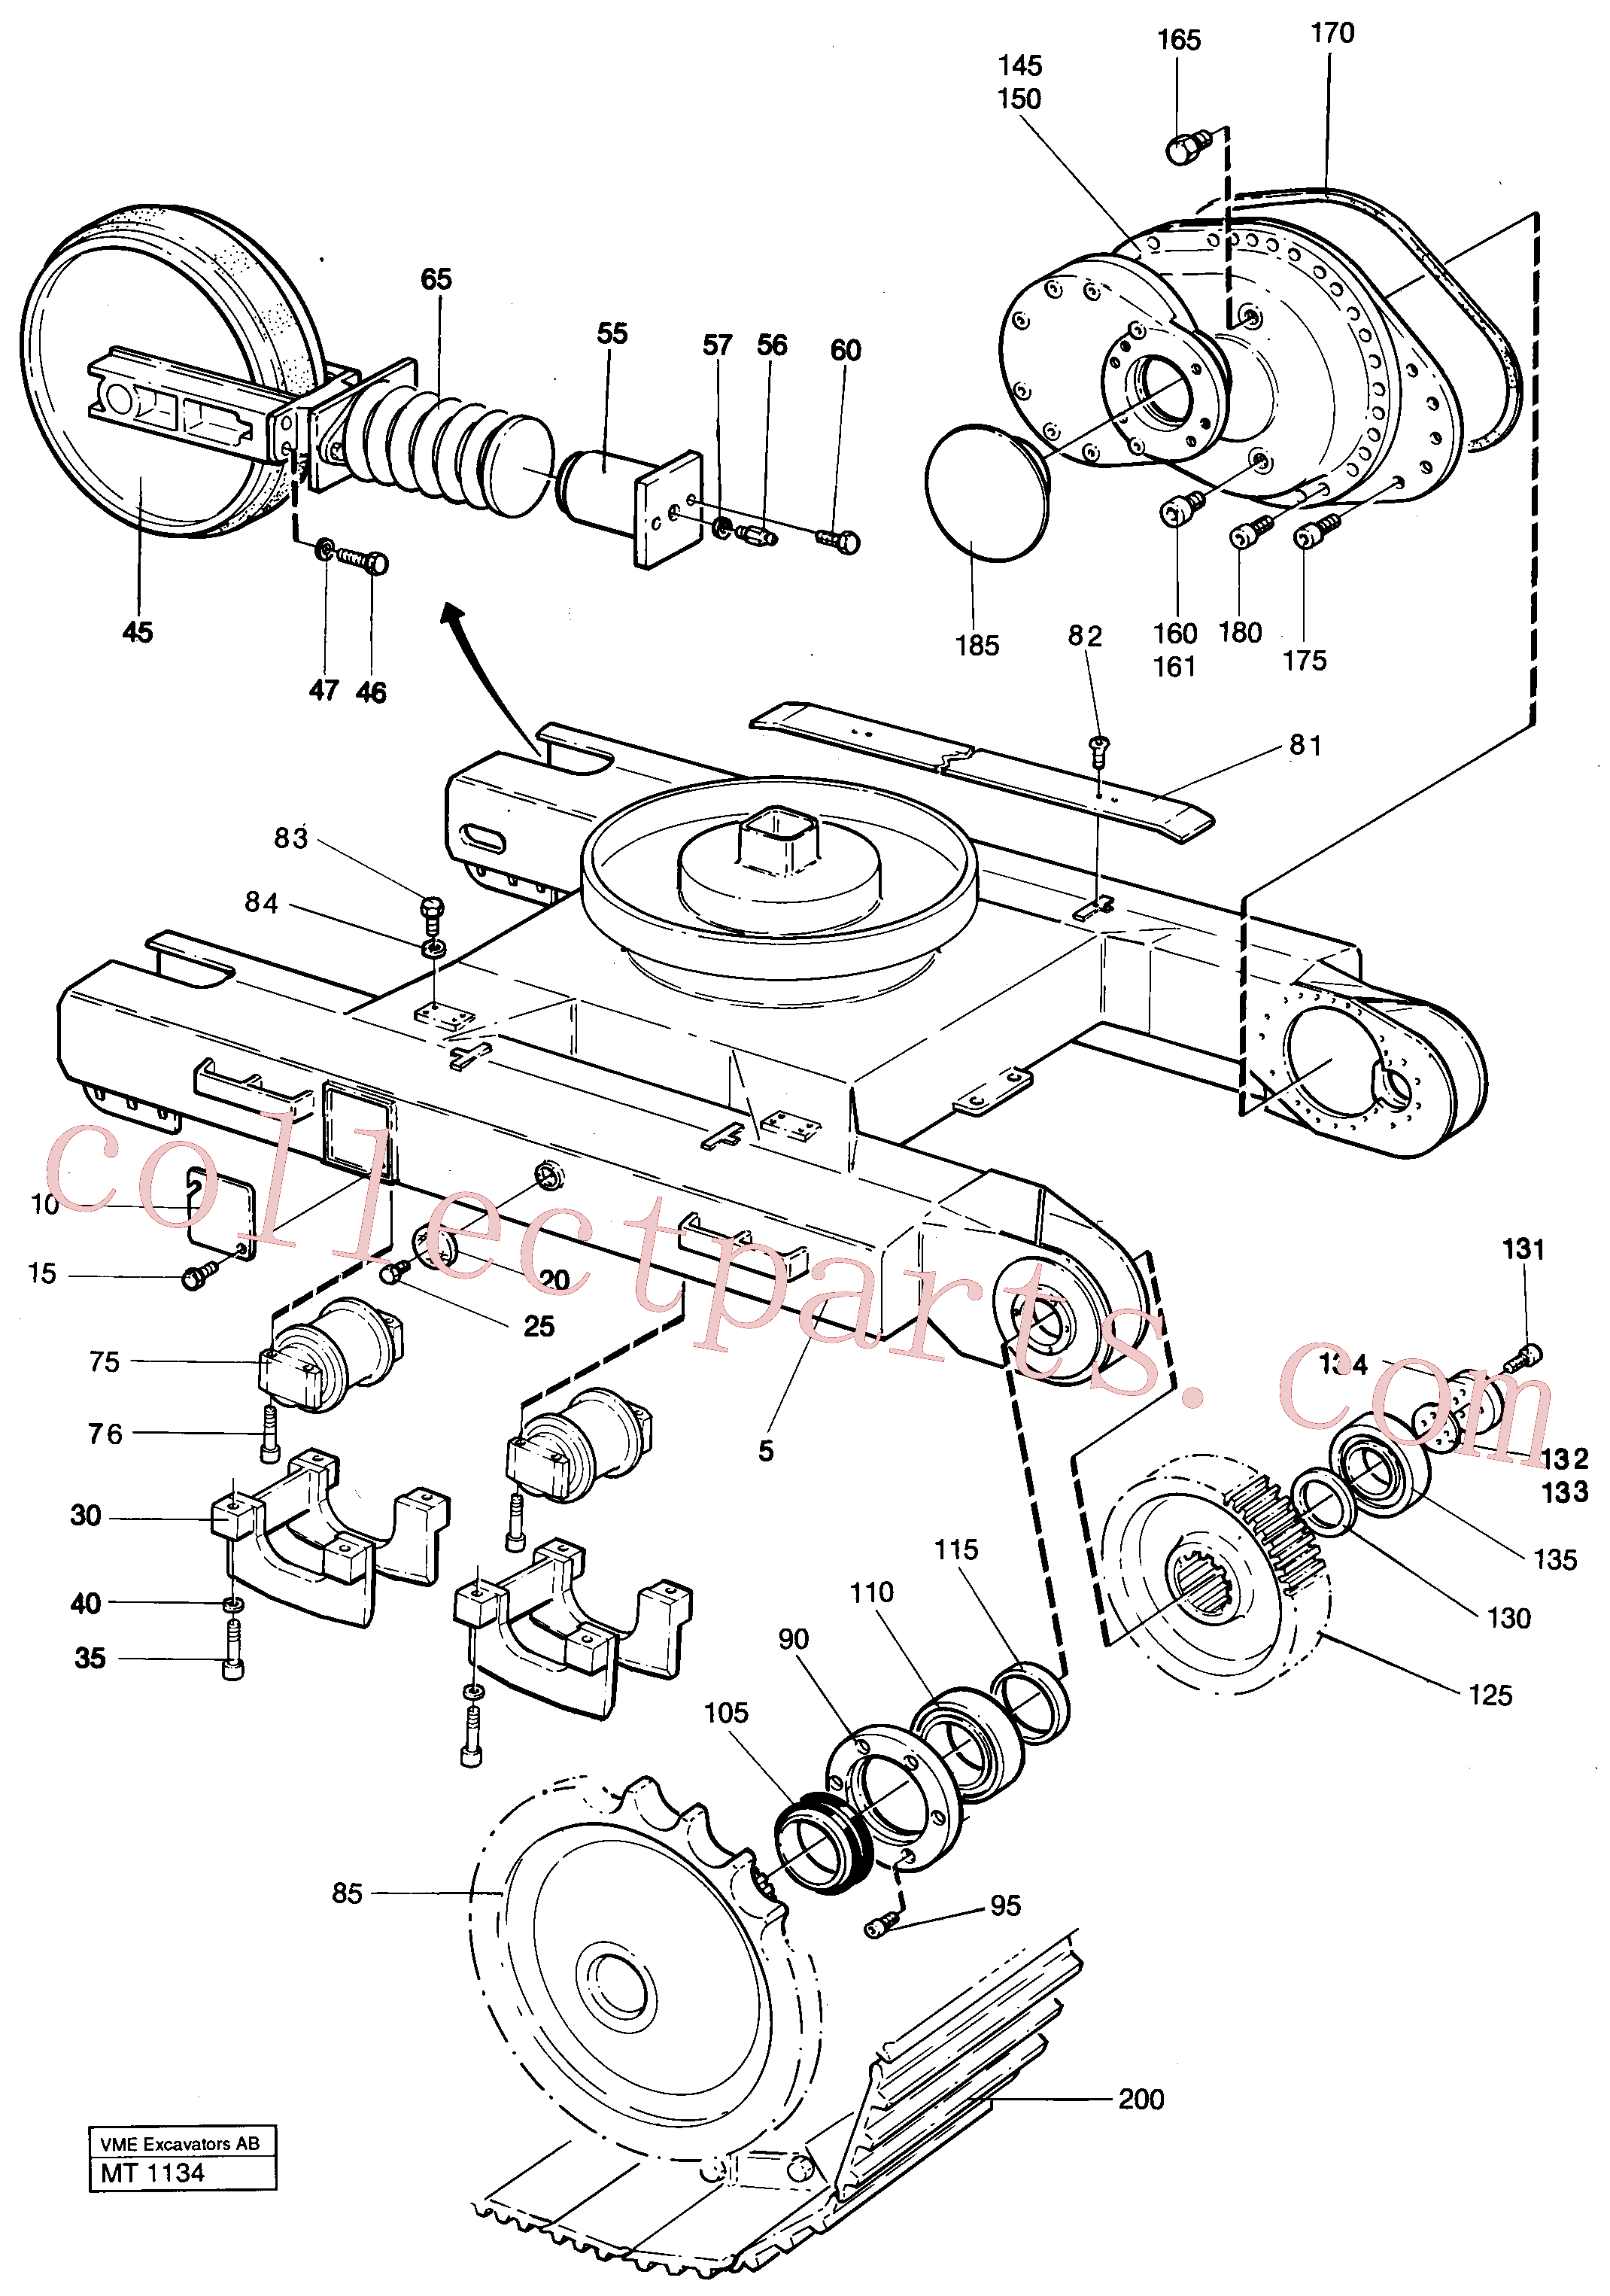 VOE14014632 for Volvo Undercarriage Ec 230 Undercarriage Ec 229(MT1134 assembly)